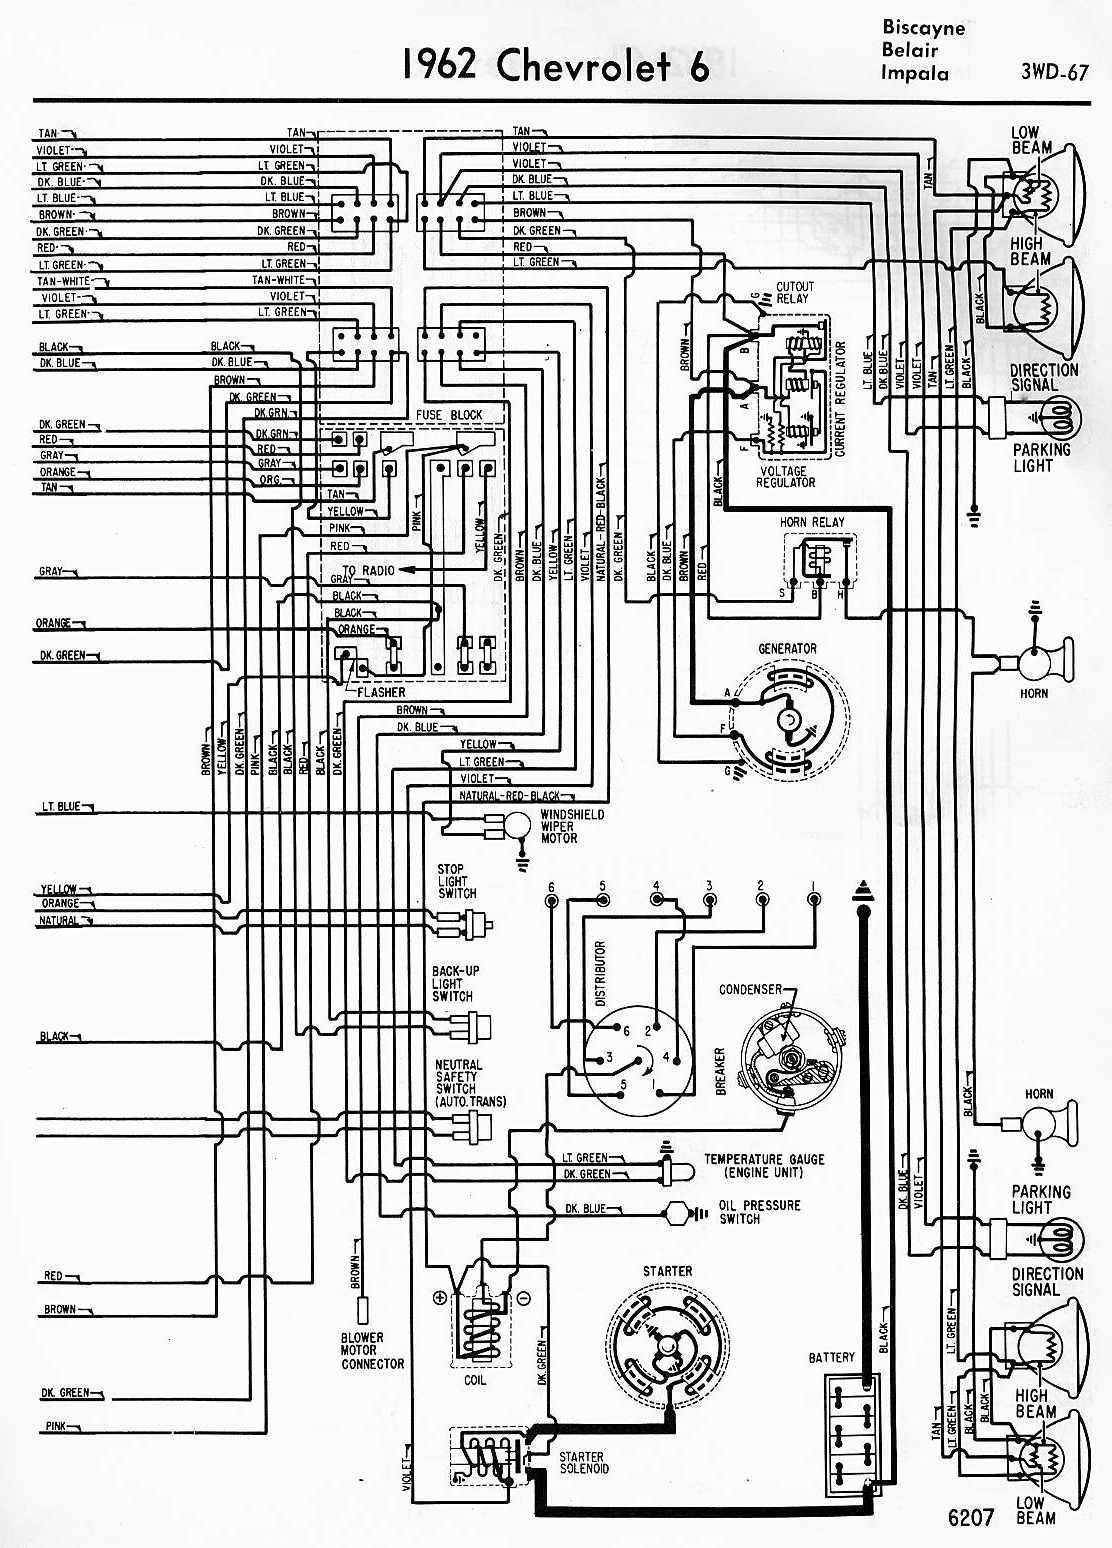 hight resolution of 1964 impala wiper wiring diagram wiring diagram technic64 chevy wiper wiring diagram wiring diagrams konsult64 chevy